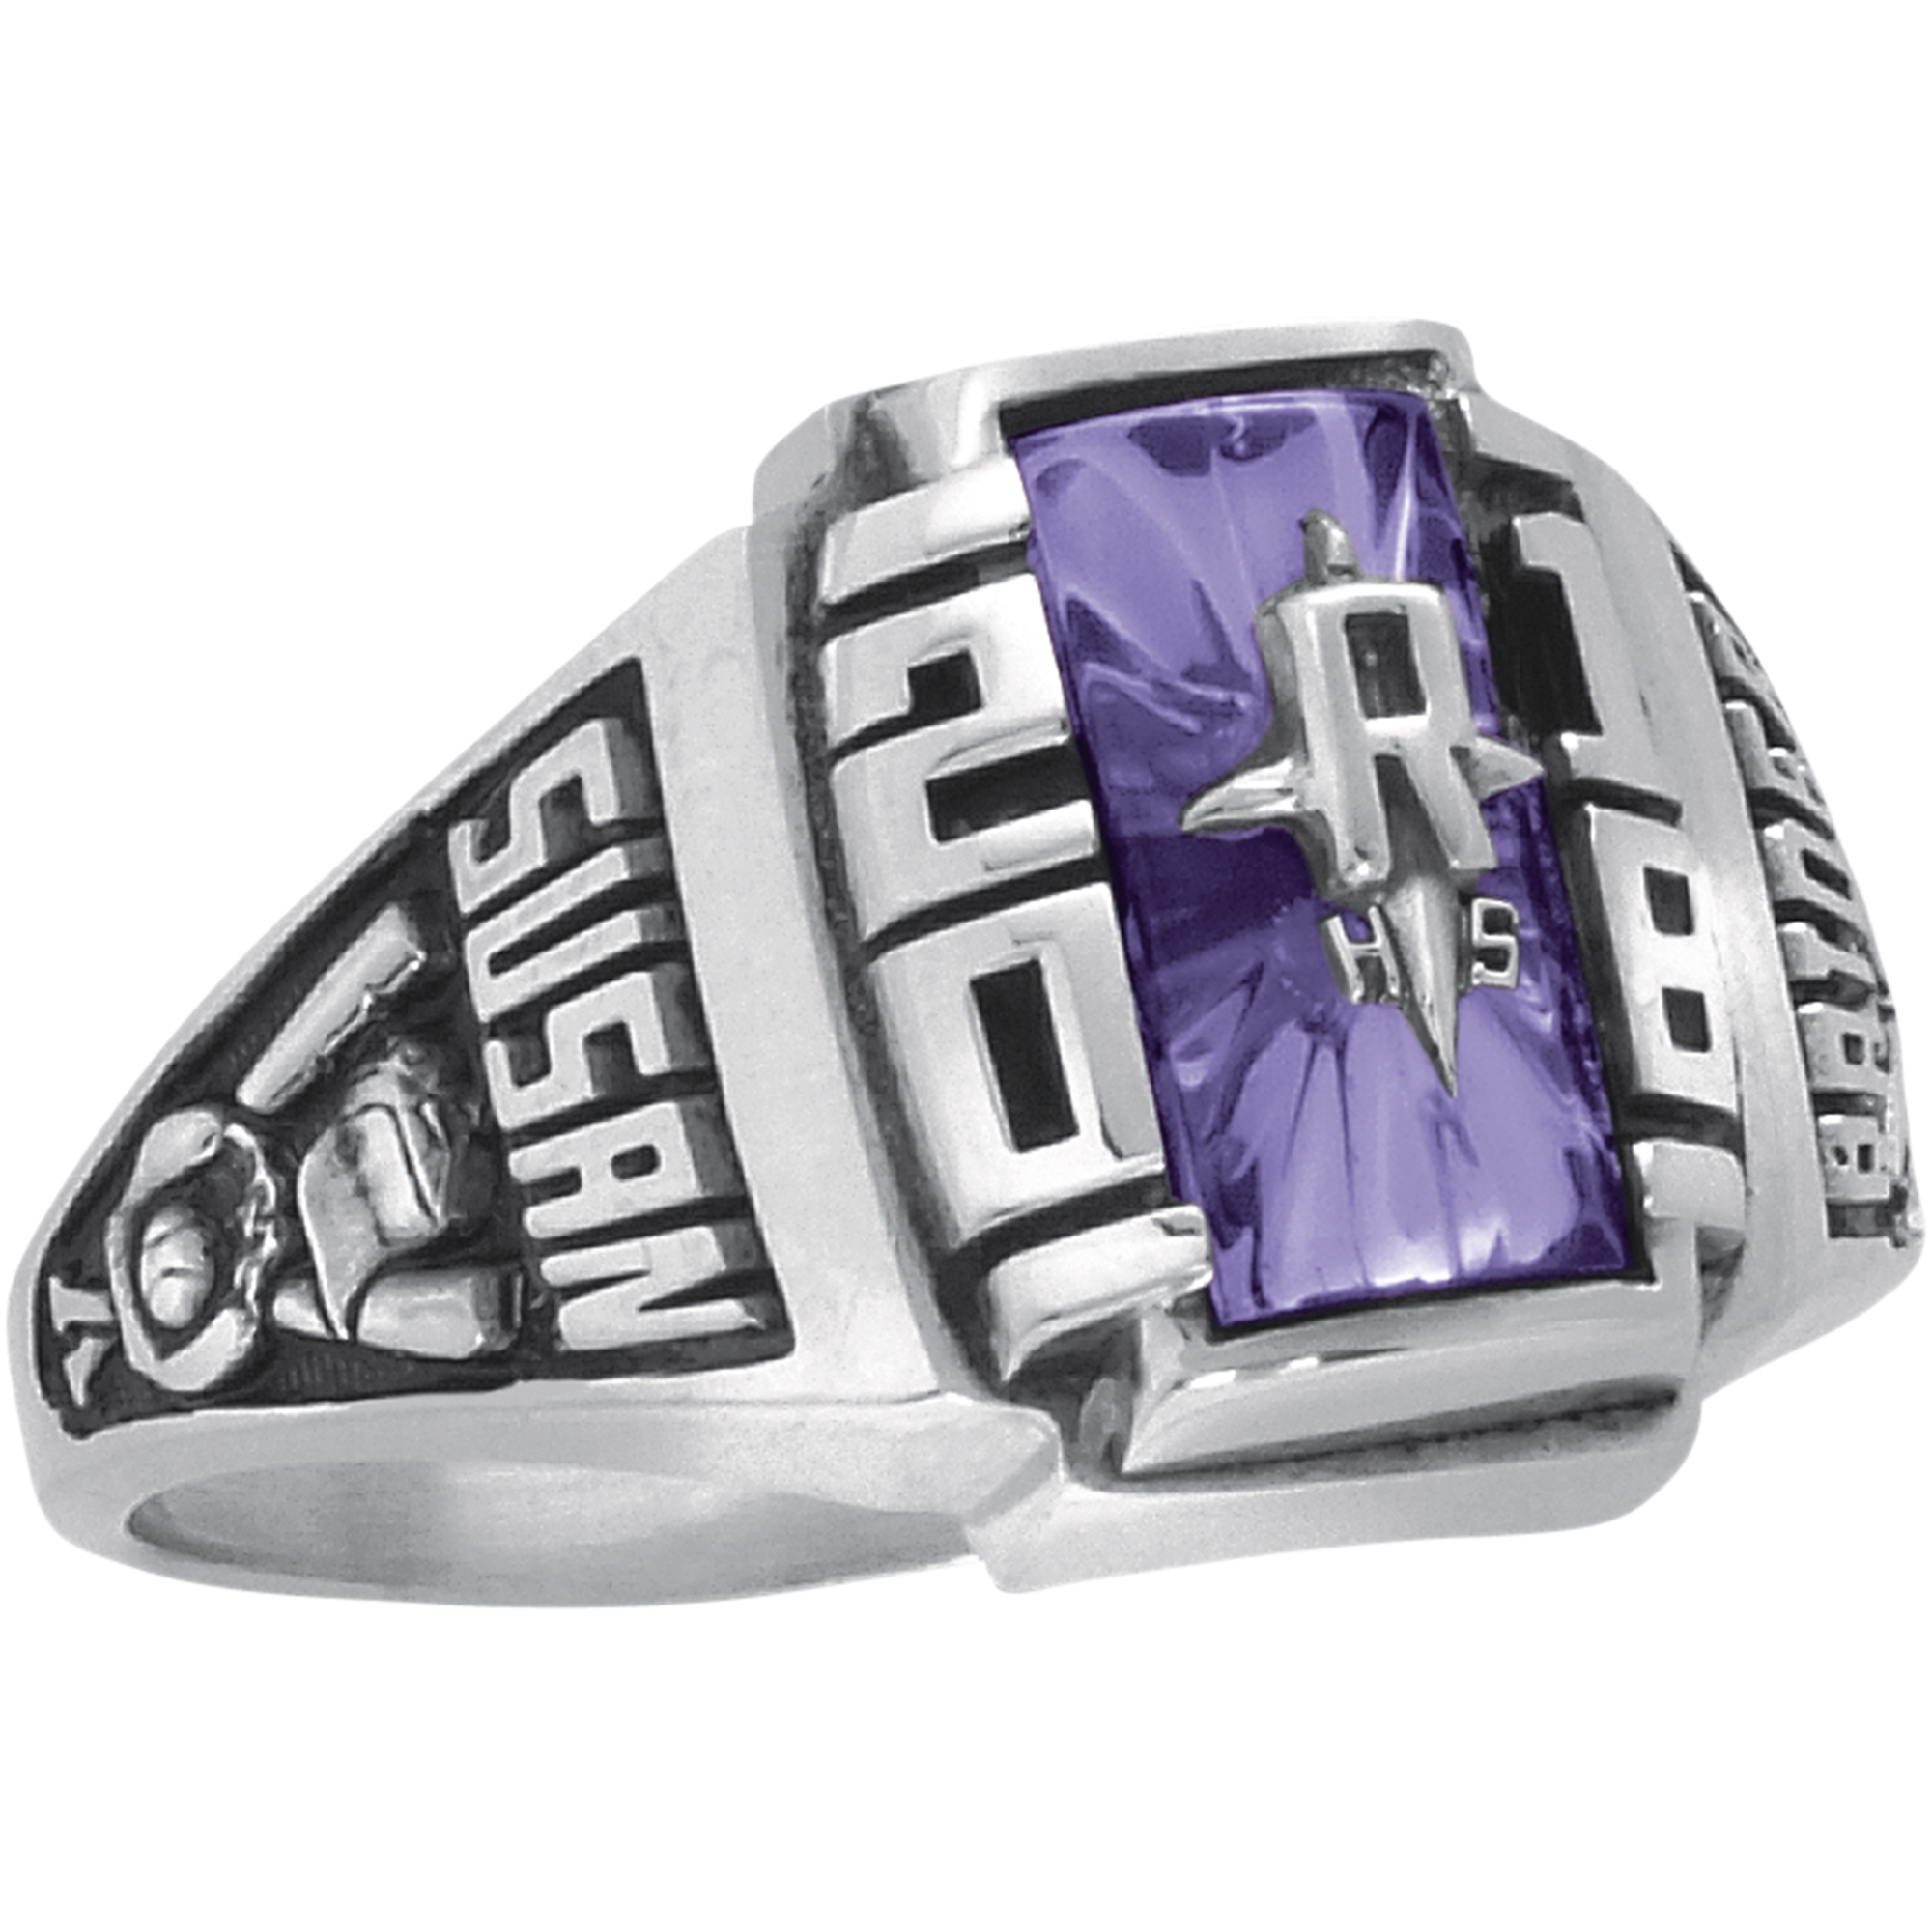 Keepsake Personalized Women's Crest Class Ring available in Valadium, Yellow and White Gold